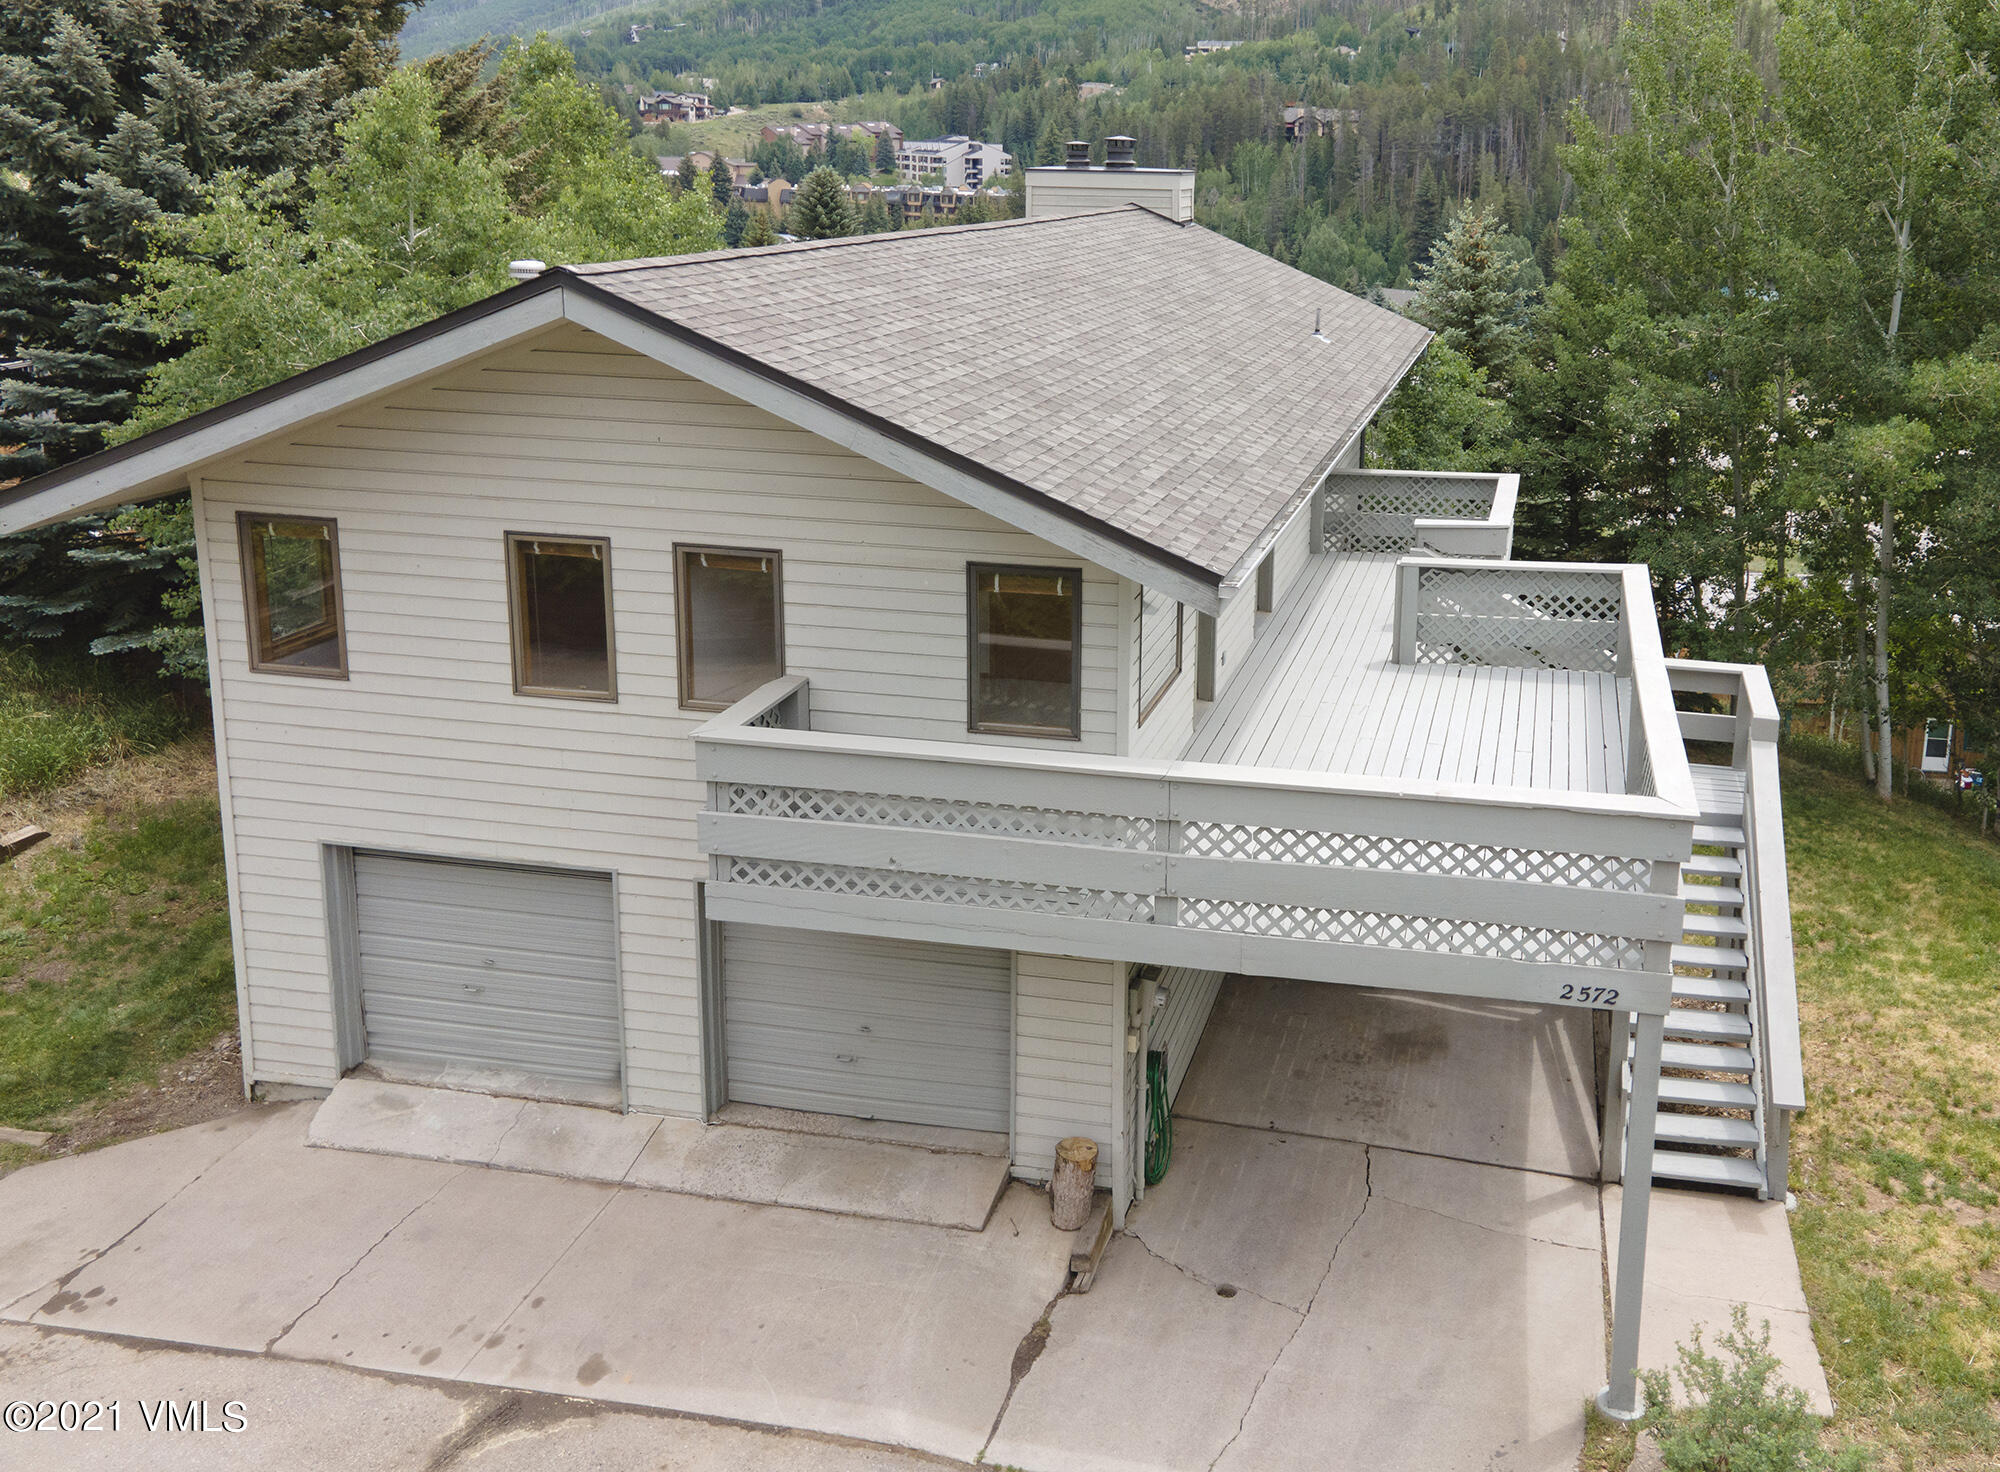 Wonderful single family home that can be split into 3 separate units. 2 bedroom, 1 bath upstairs, 2 bedroom, 1 bath on lower level, a middle level with 1 bedroom and 1 bath. 3 separate decks, sunny, South-facing, mountain and valley views. 2 car garage plus carport and surface parking. On the bus route.  Owner has rented this, under market to long-term tenants for  $4795/mo. New owner can live in part, rent the other part of the house, or just have lots of room for family and guests.Lot allows for large expansion of house, to almost double the existing size.  Great candidate for staff housing.This is currently the lowest priced single family home in Vail, and is great value.